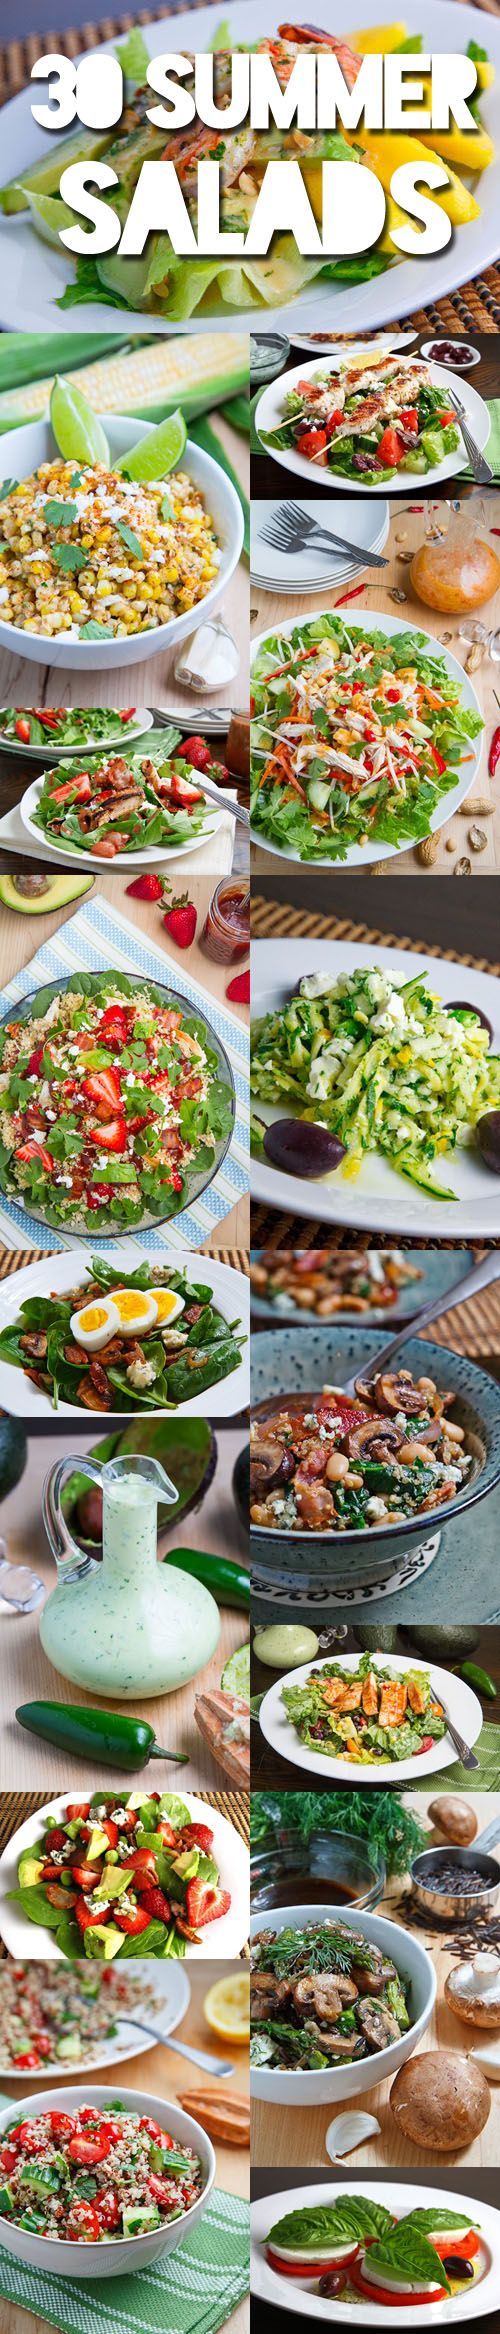 30 Summer Salads Looks like some good ideas. I esp like the Vietnam spring roll salad idea